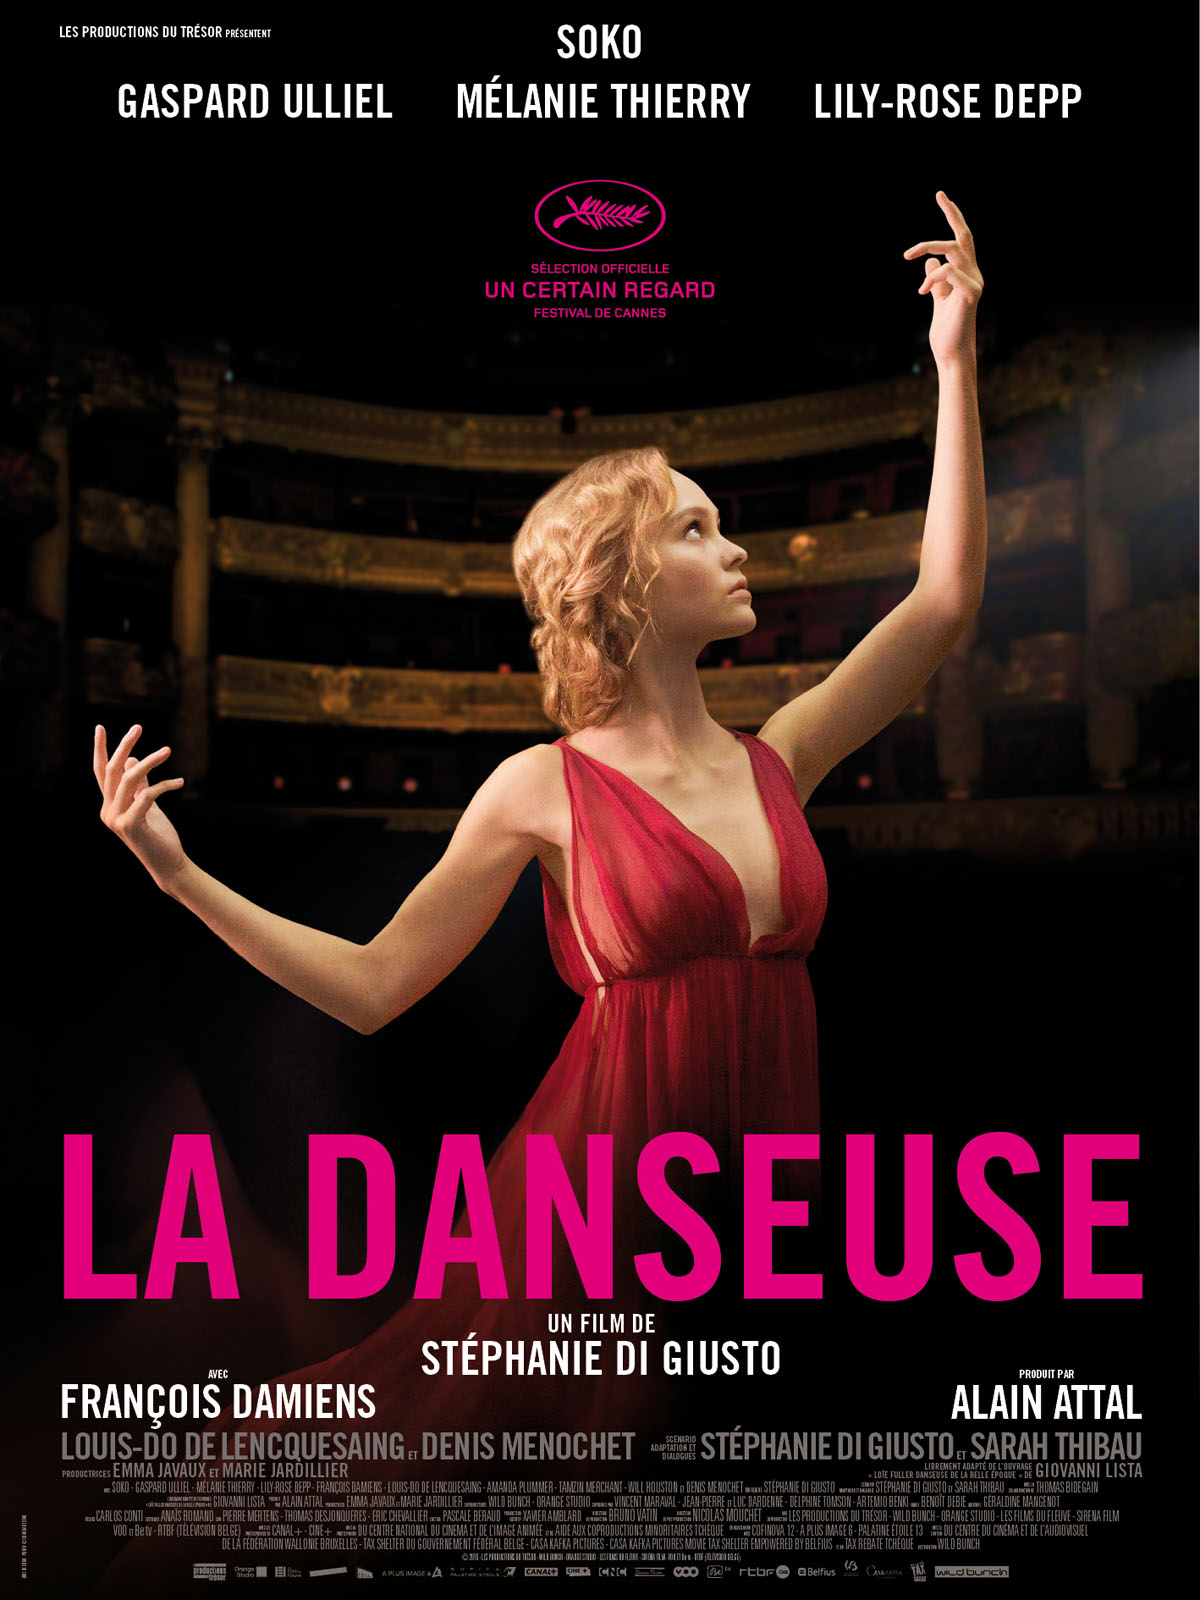 LA DANSEUSE / THE DANCER